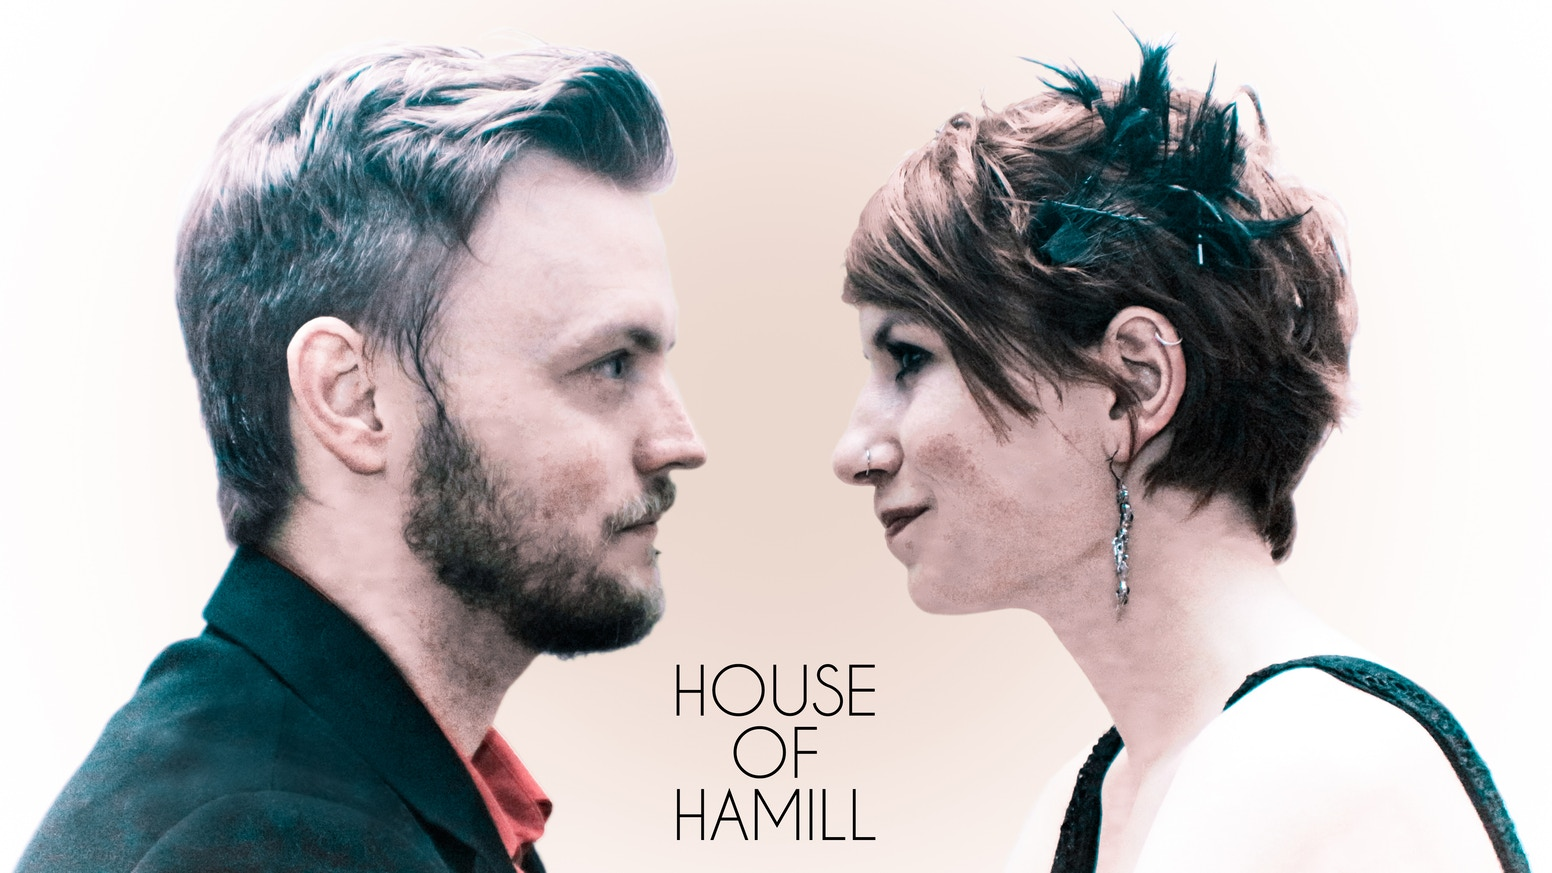 We're contemporary/Celtic duo, House of Hamill, and with your help, we're creating our debut album!